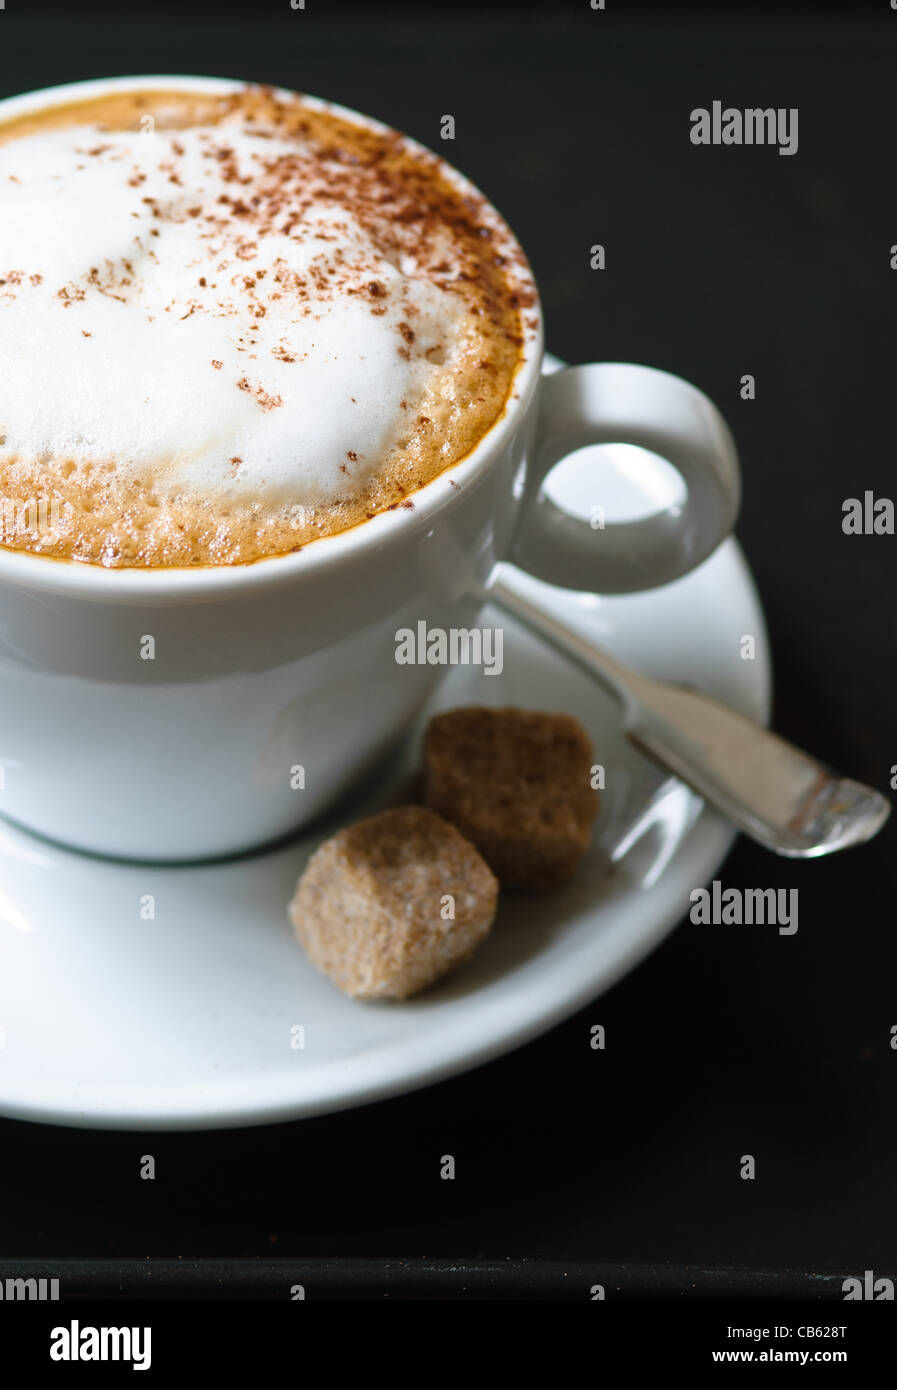 Cappuccino in white cup - Stock Image